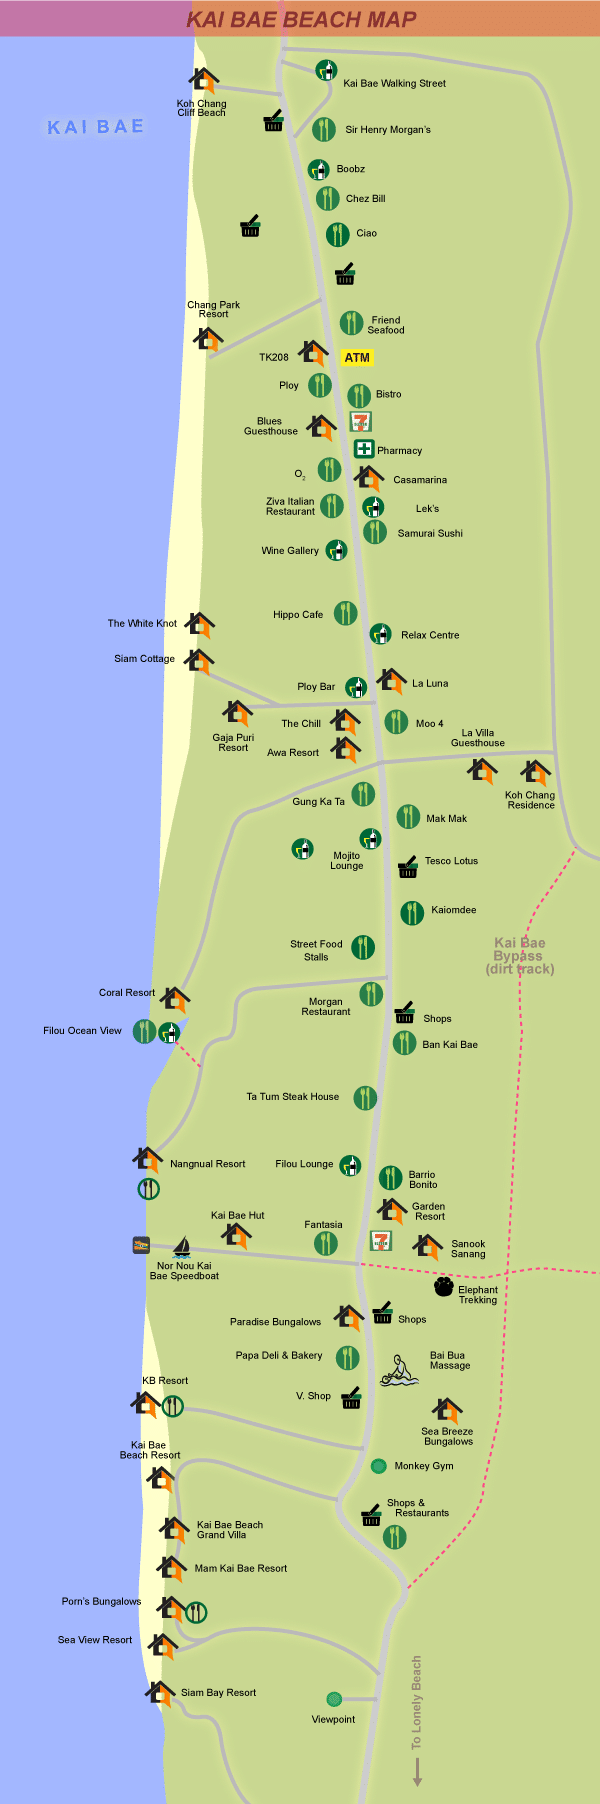 Map of Kai Bae beach, Koh Chang